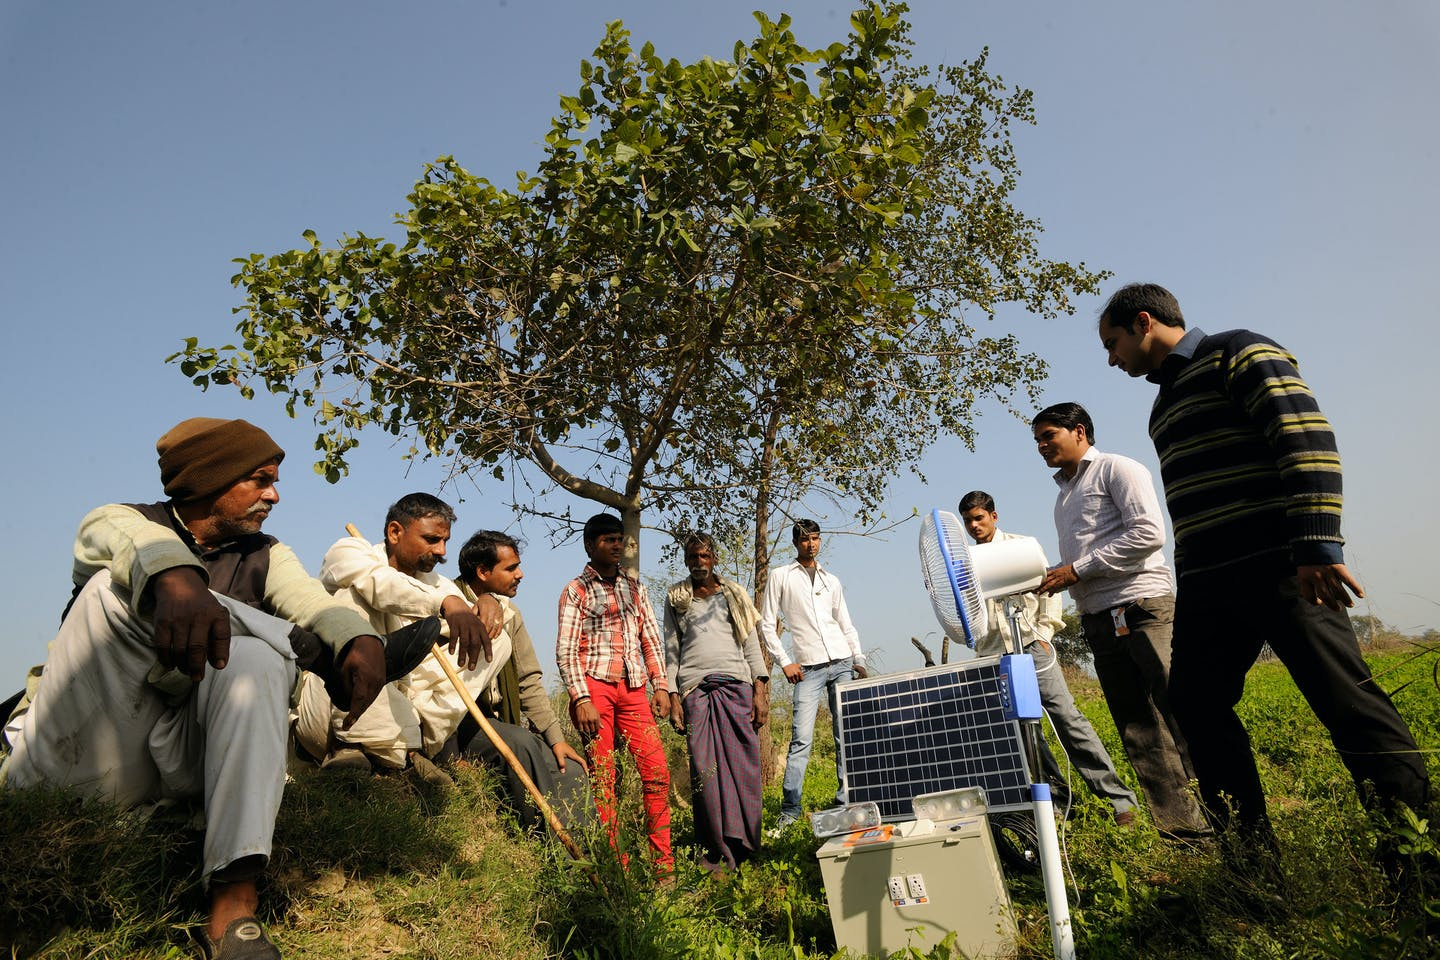 uttar pradesh villagers renewable